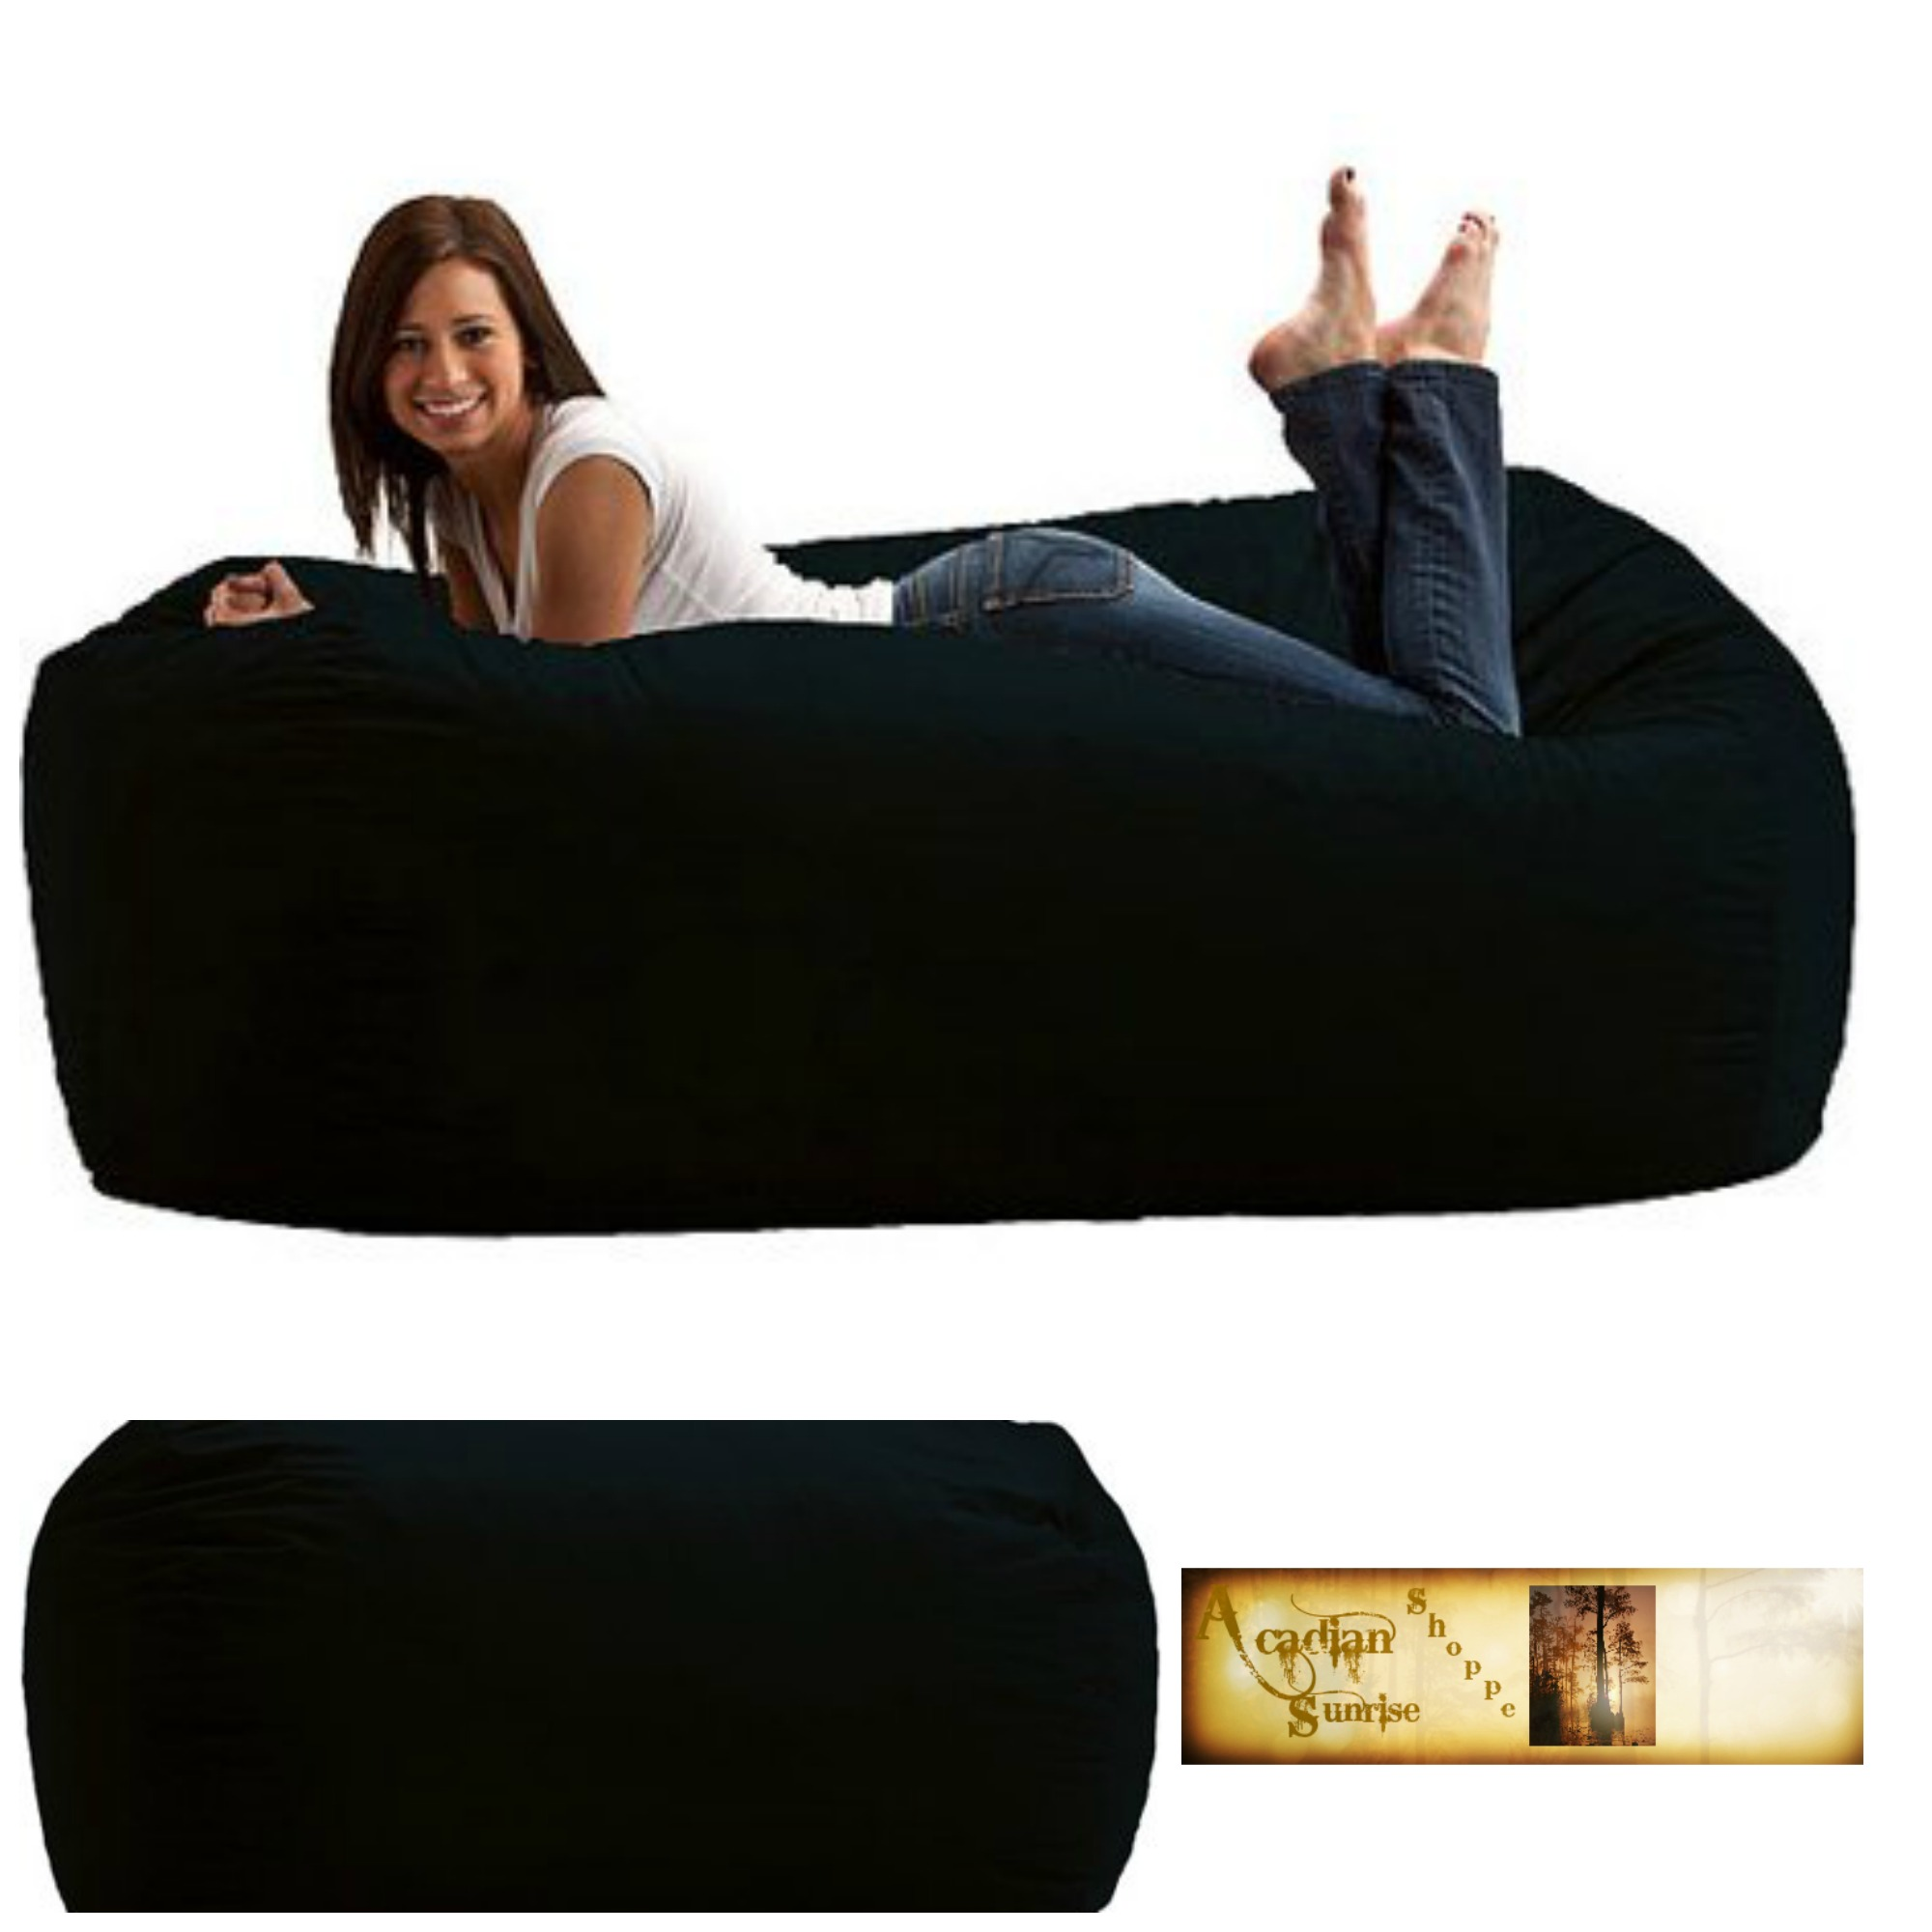 Miraculous Details About Adult Bean Bag Chair Huge 6 Media Lounger Fuf Memory Foam Cozy Soft Pdpeps Interior Chair Design Pdpepsorg